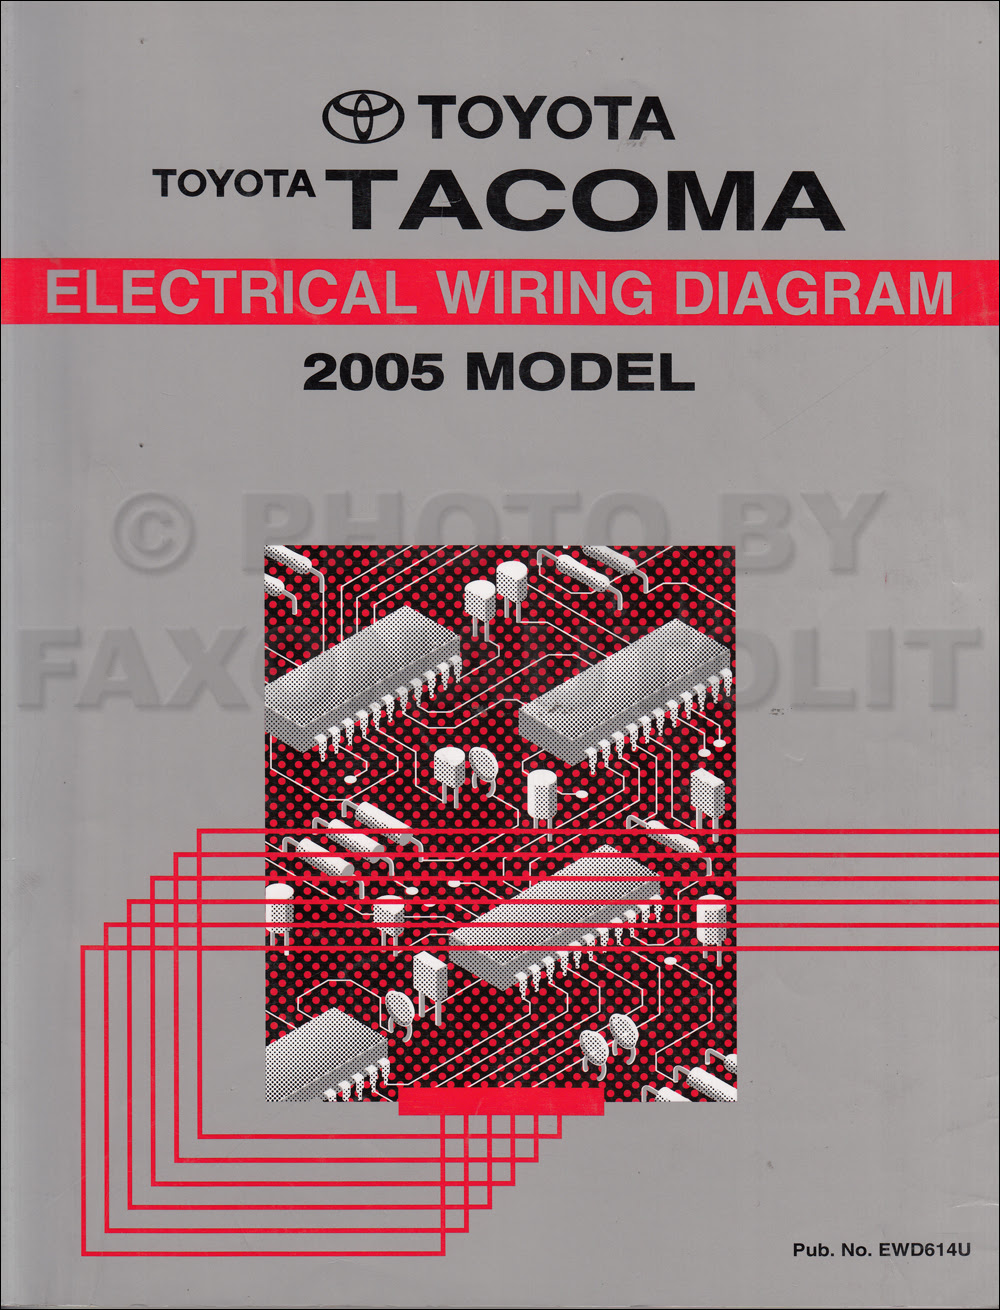 Ab2 06 Toyota Tacoma Wiring Diagram Wiring Library